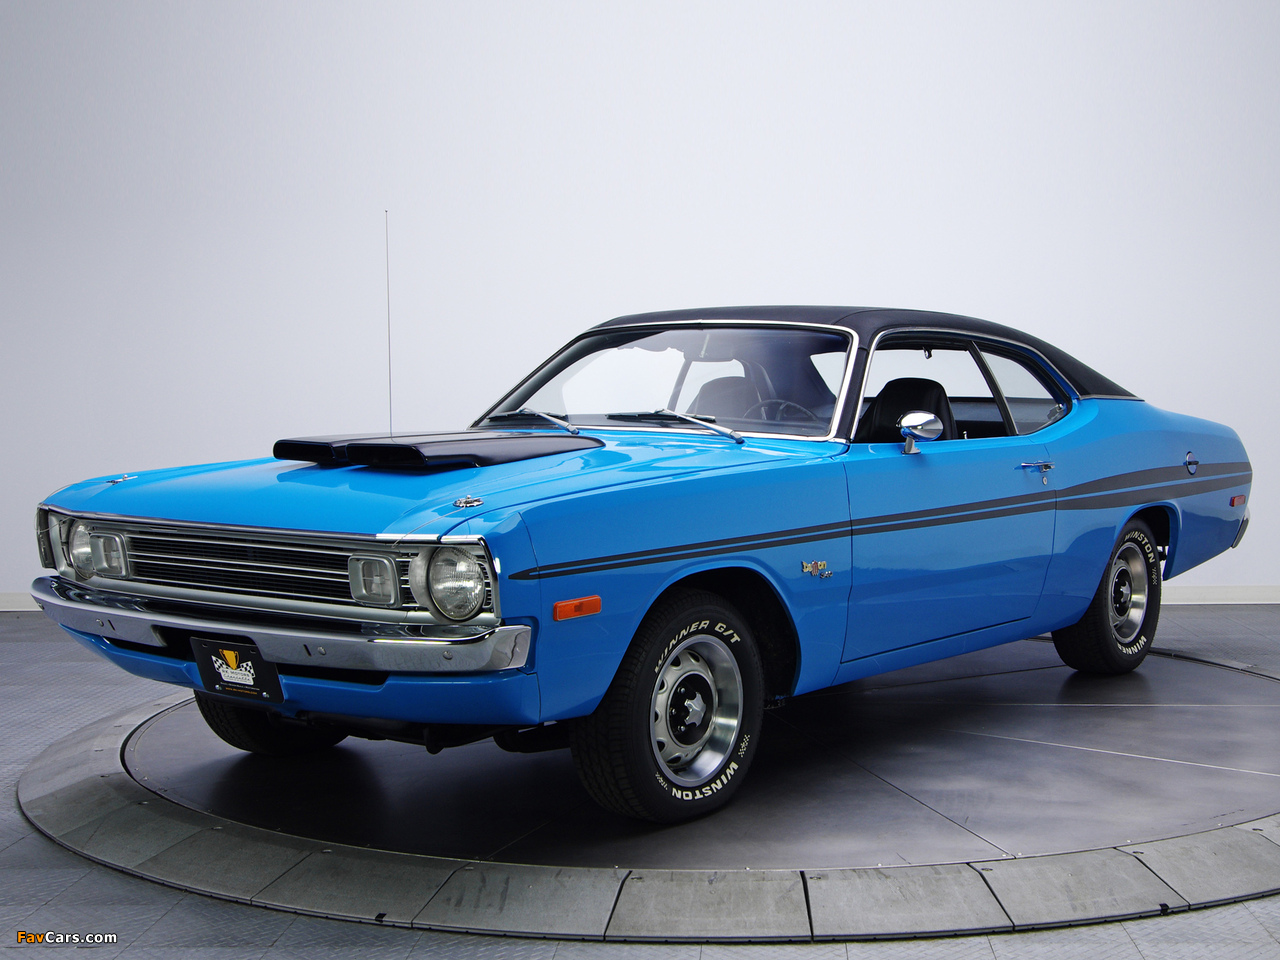 Dodge Dart Demon 340 (LM29) 1972 wallpapers (1280 x 960)